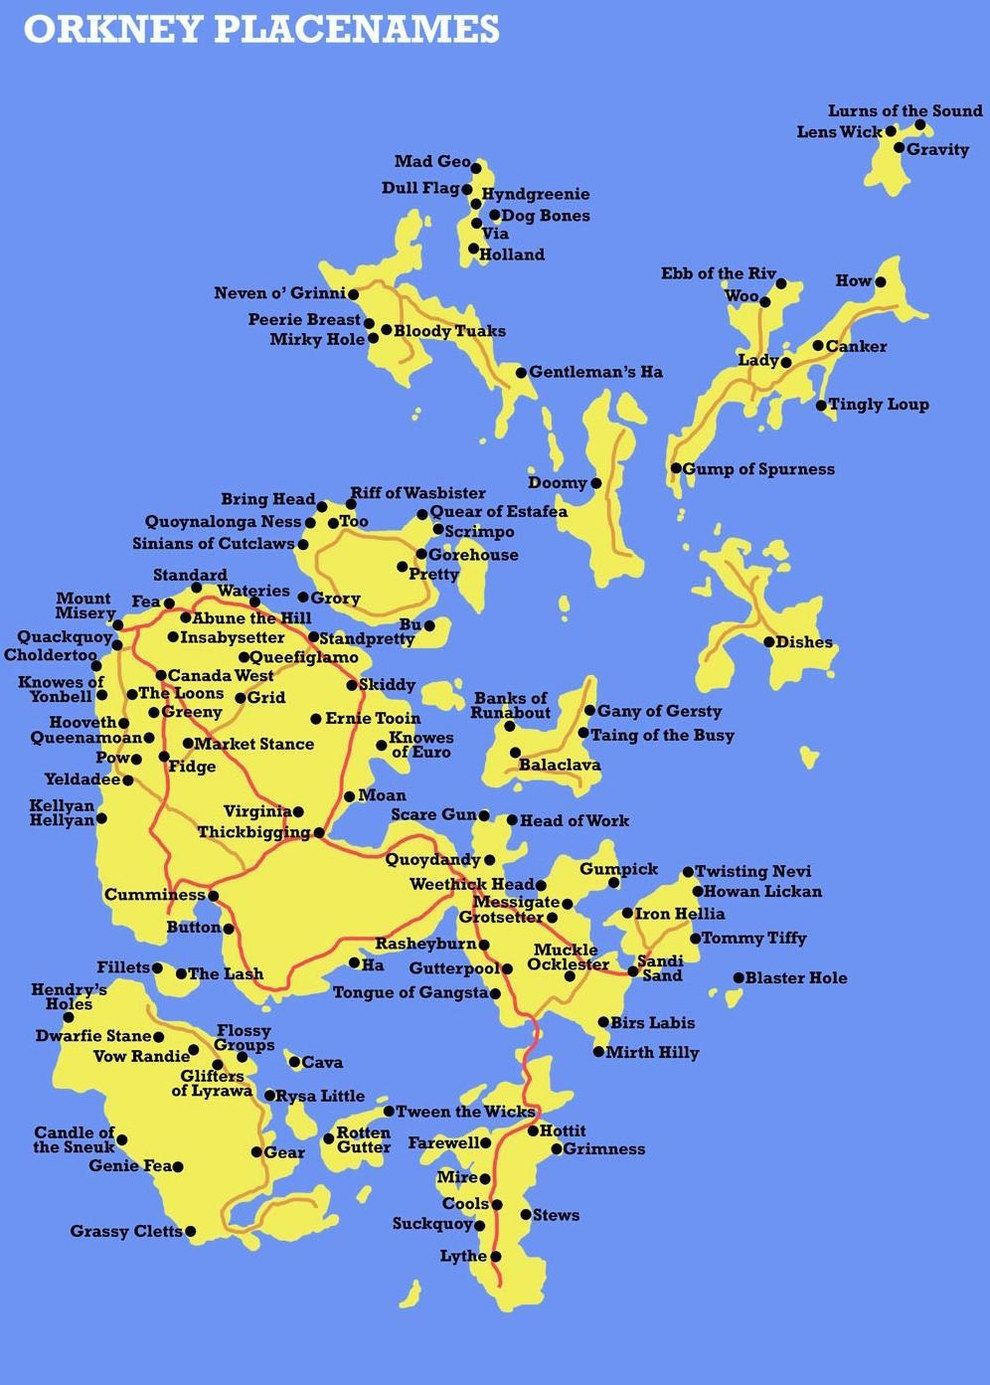 This fabulous map showing all of the weird place names in the Orkney Islands.